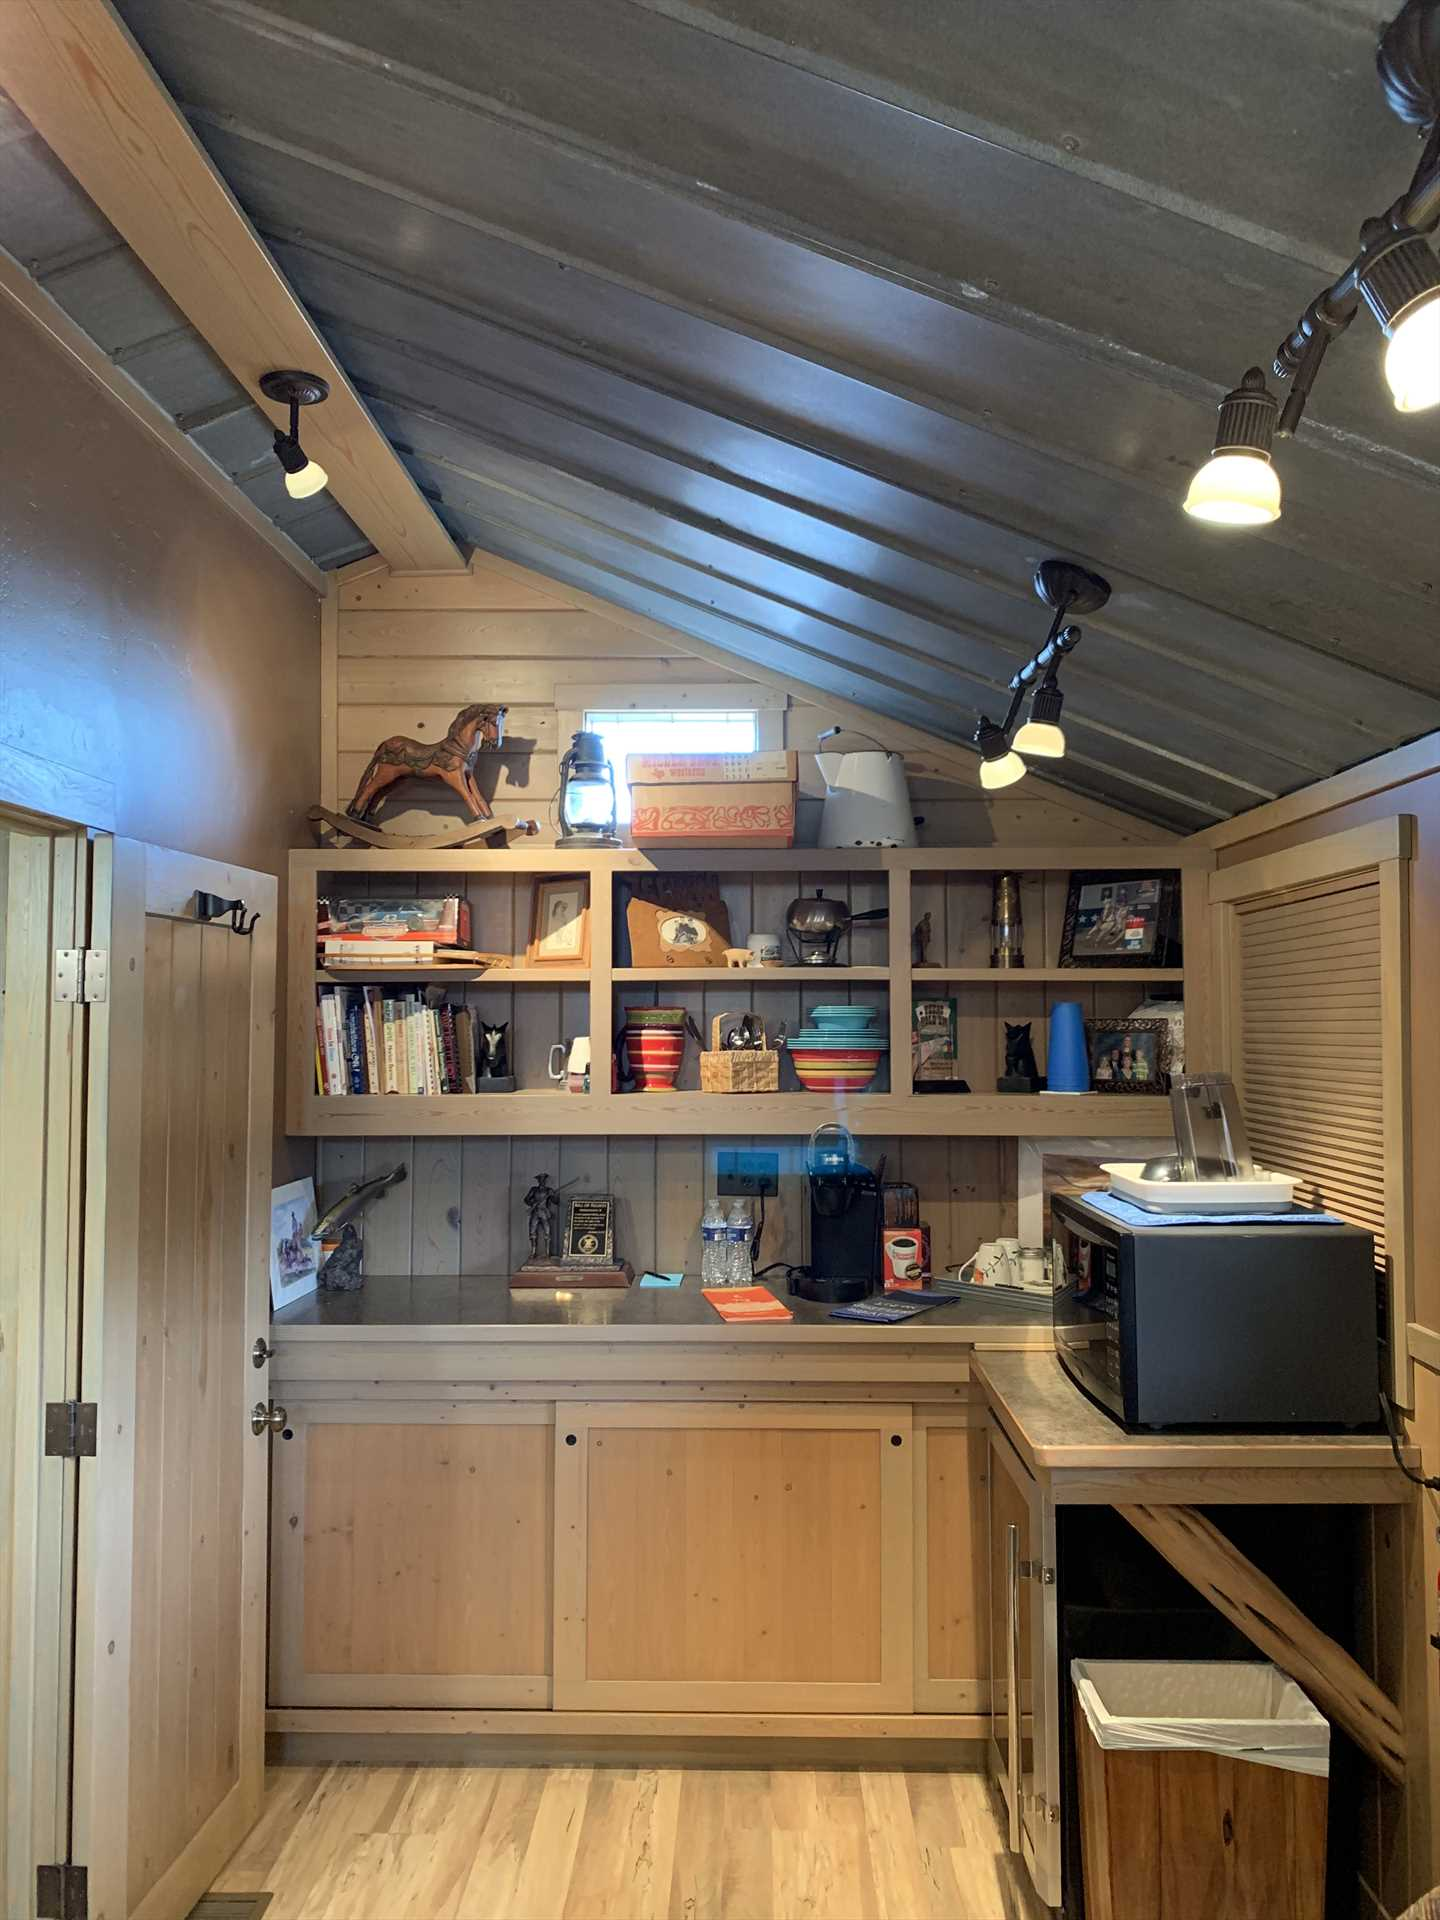 Coffee basics, a microwave, and mini fridge round out the cozy kitchenette. For more cooking space, check out the shared pavilion!